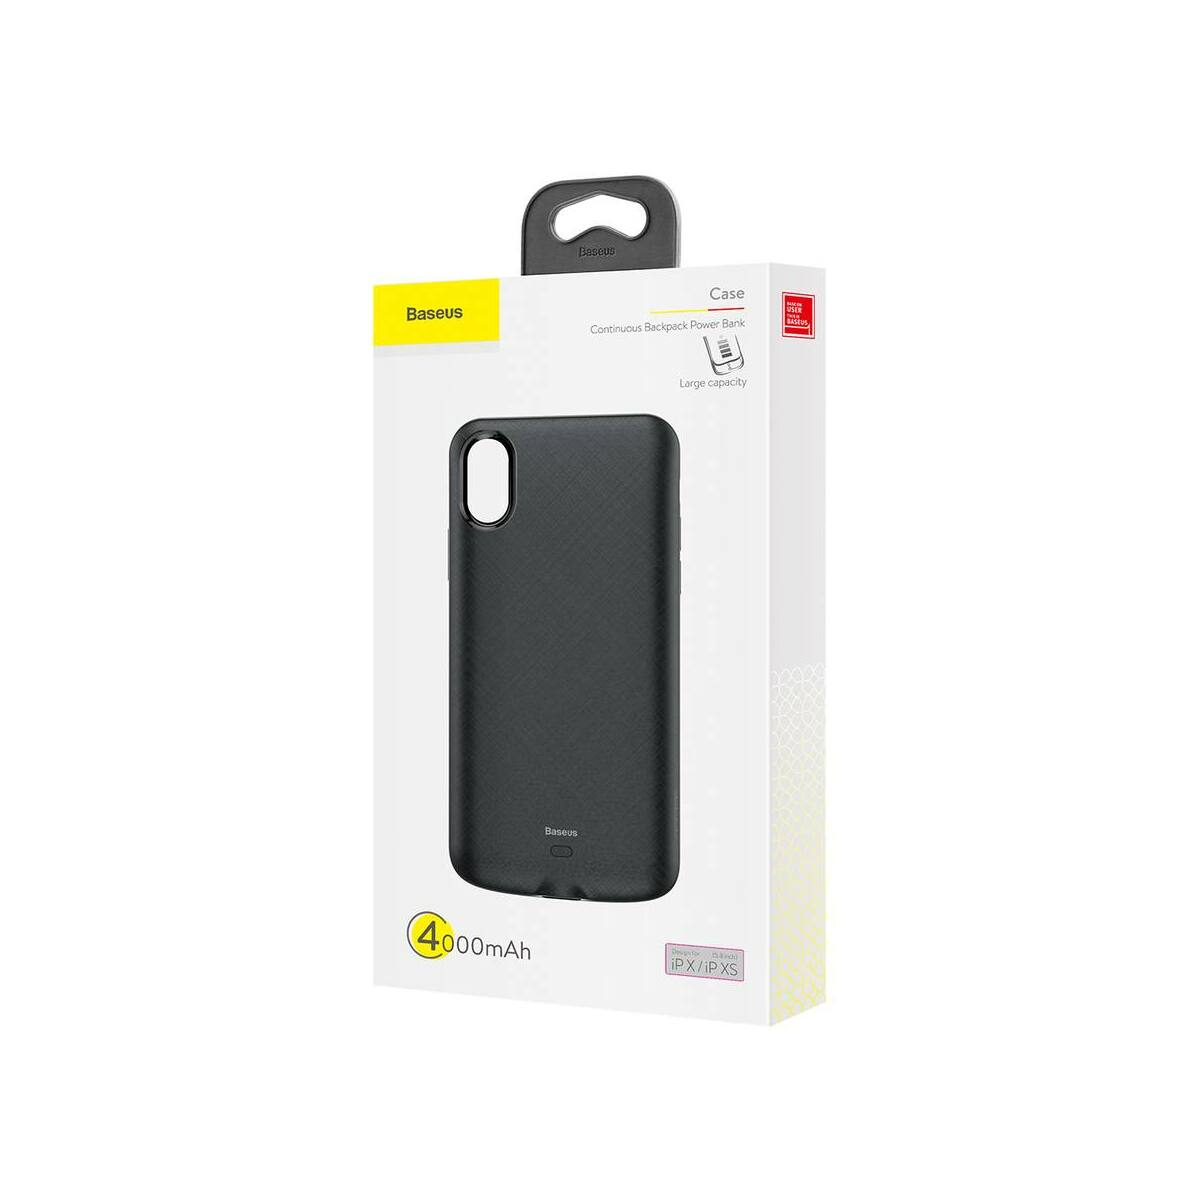 Baseus Power Bank tok, Continuous Backpack 4000 mAh iPhone XS, fekete (ACAPIPH58-BJ01)